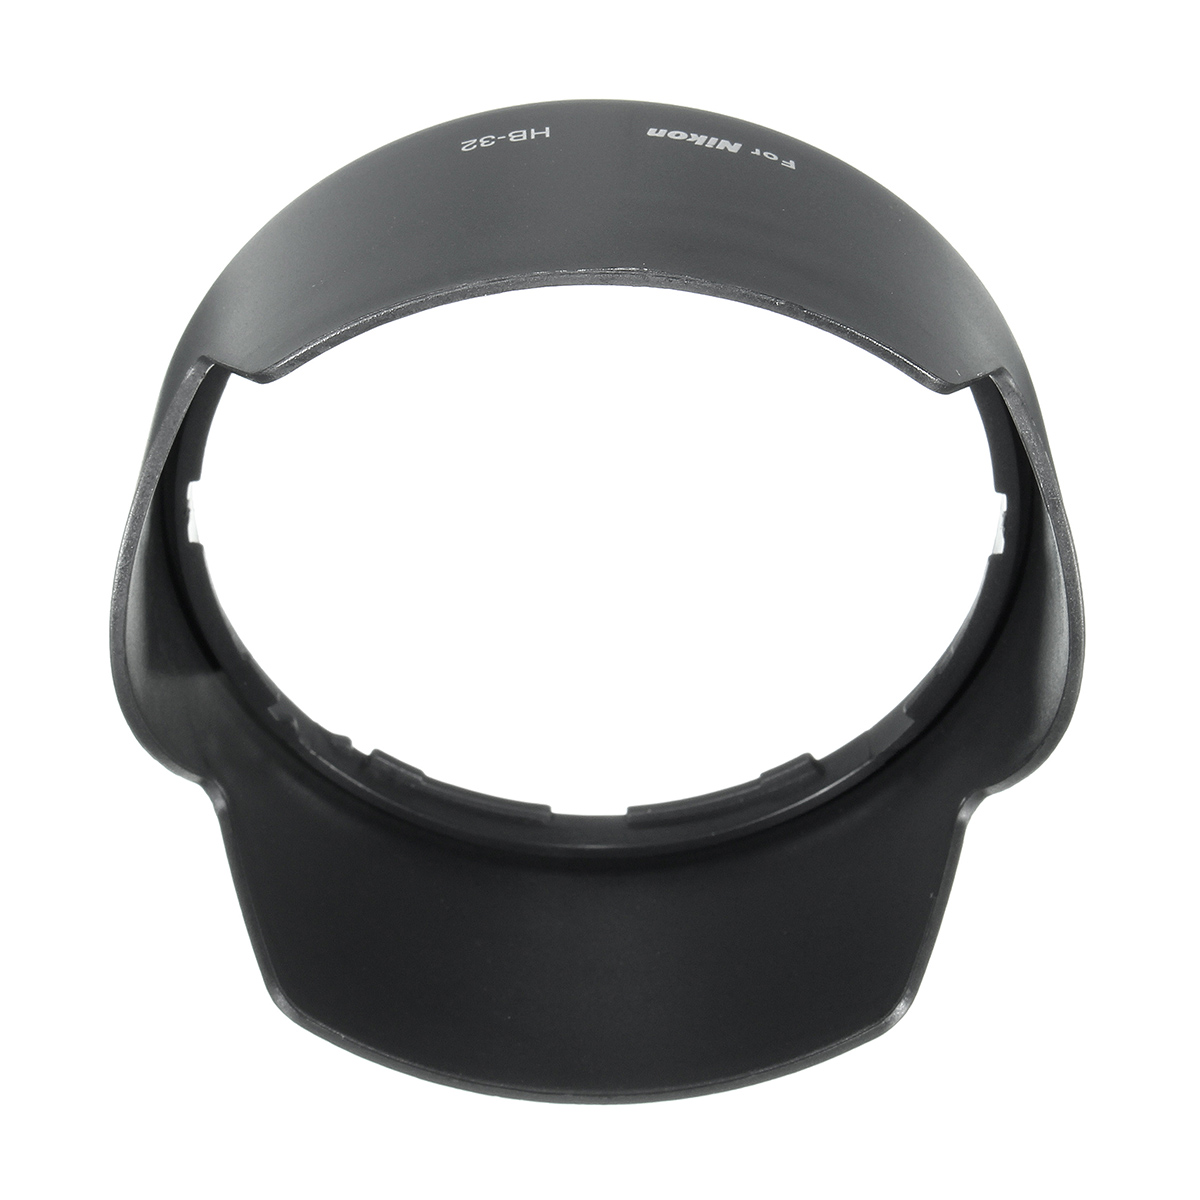 Plastic Blackout HB-32 Dedicated Lens Hood For Nikon 18-105 18-140 18-135mm 18-70mm Lens